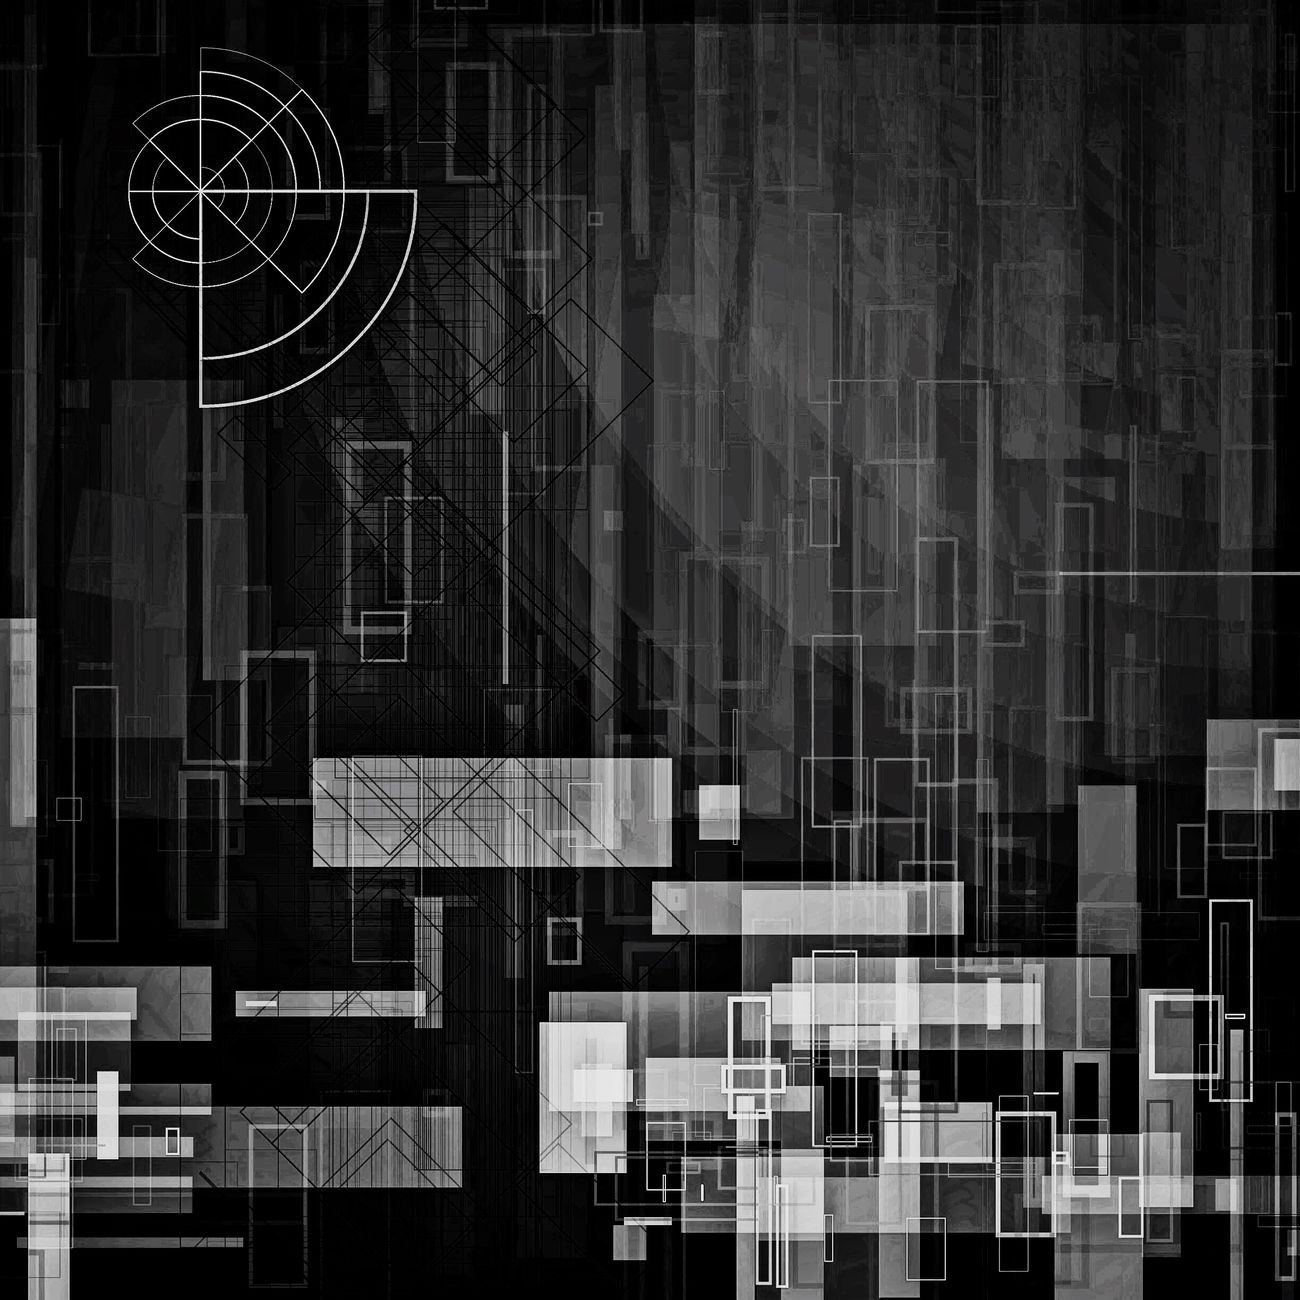 Abstract Black & White Geometric Abstraction Monochrome Blackandwhite Photography Geometric Geometric Shapes Digital World Blackandwhite Black And White